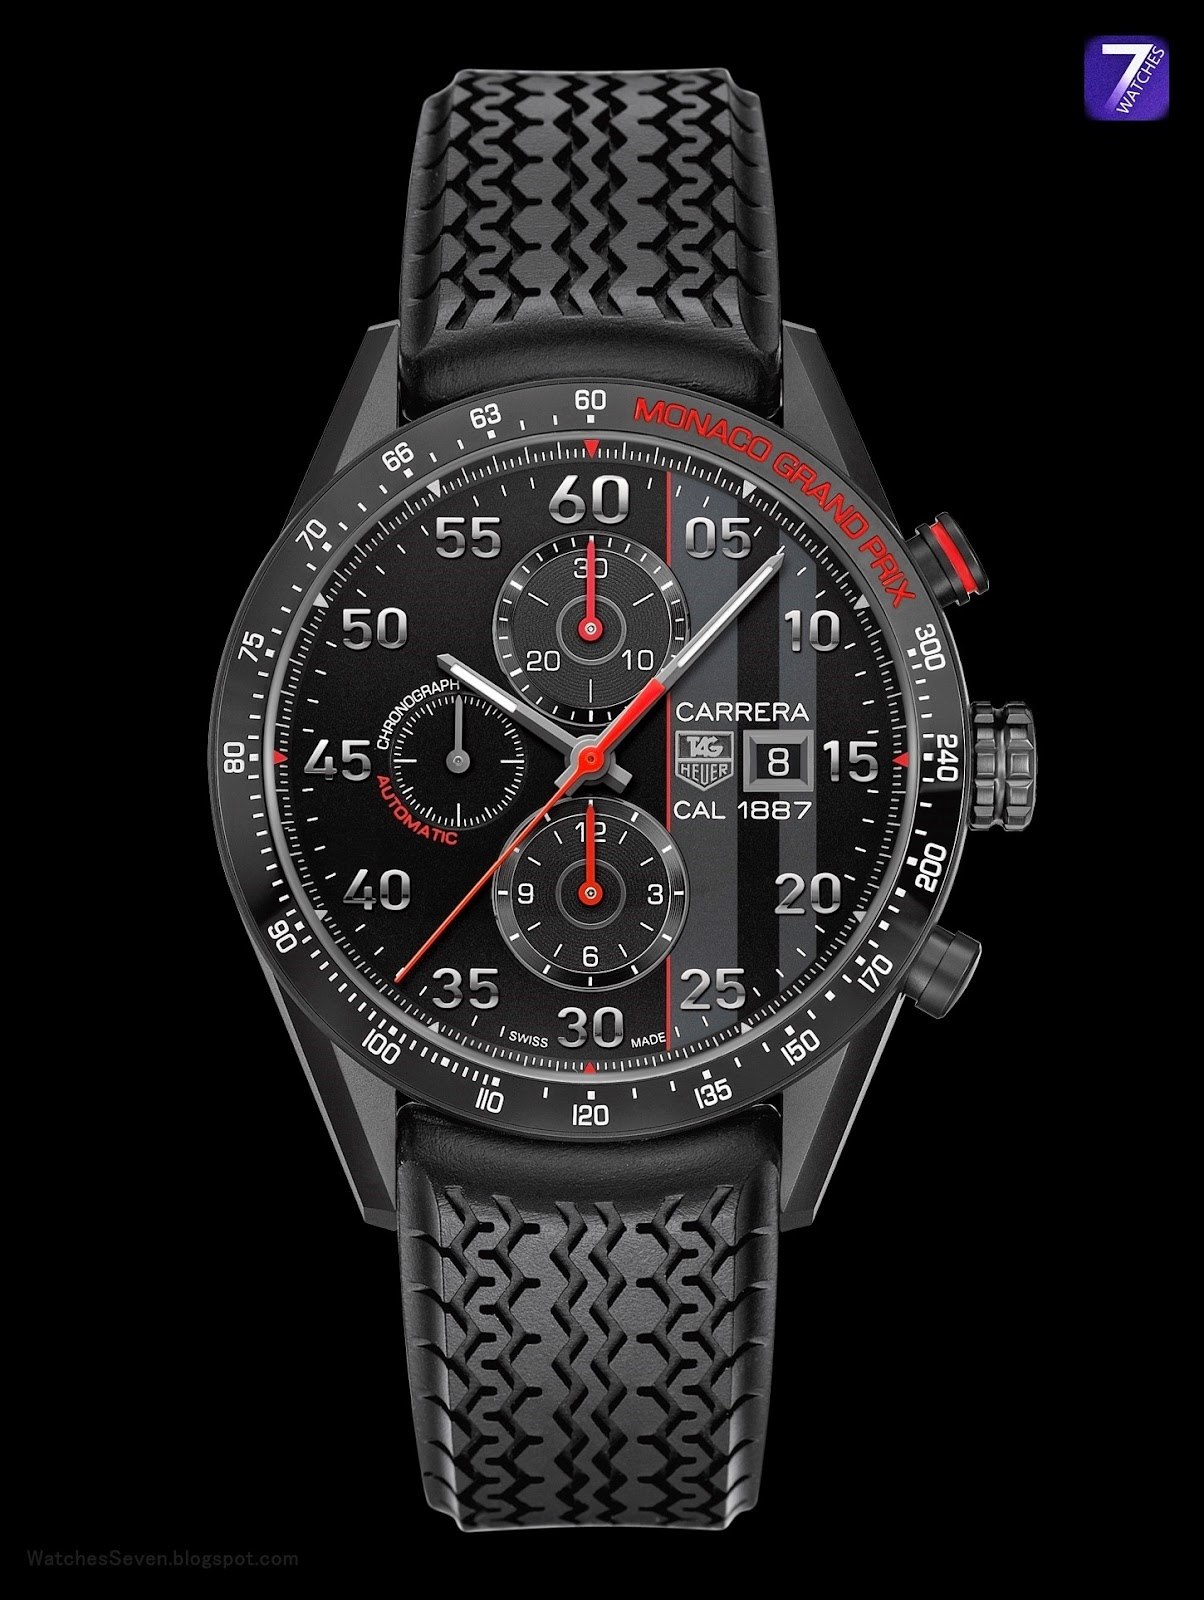 watches 7 tag heuer carrera calibre 1887 chronograph. Black Bedroom Furniture Sets. Home Design Ideas